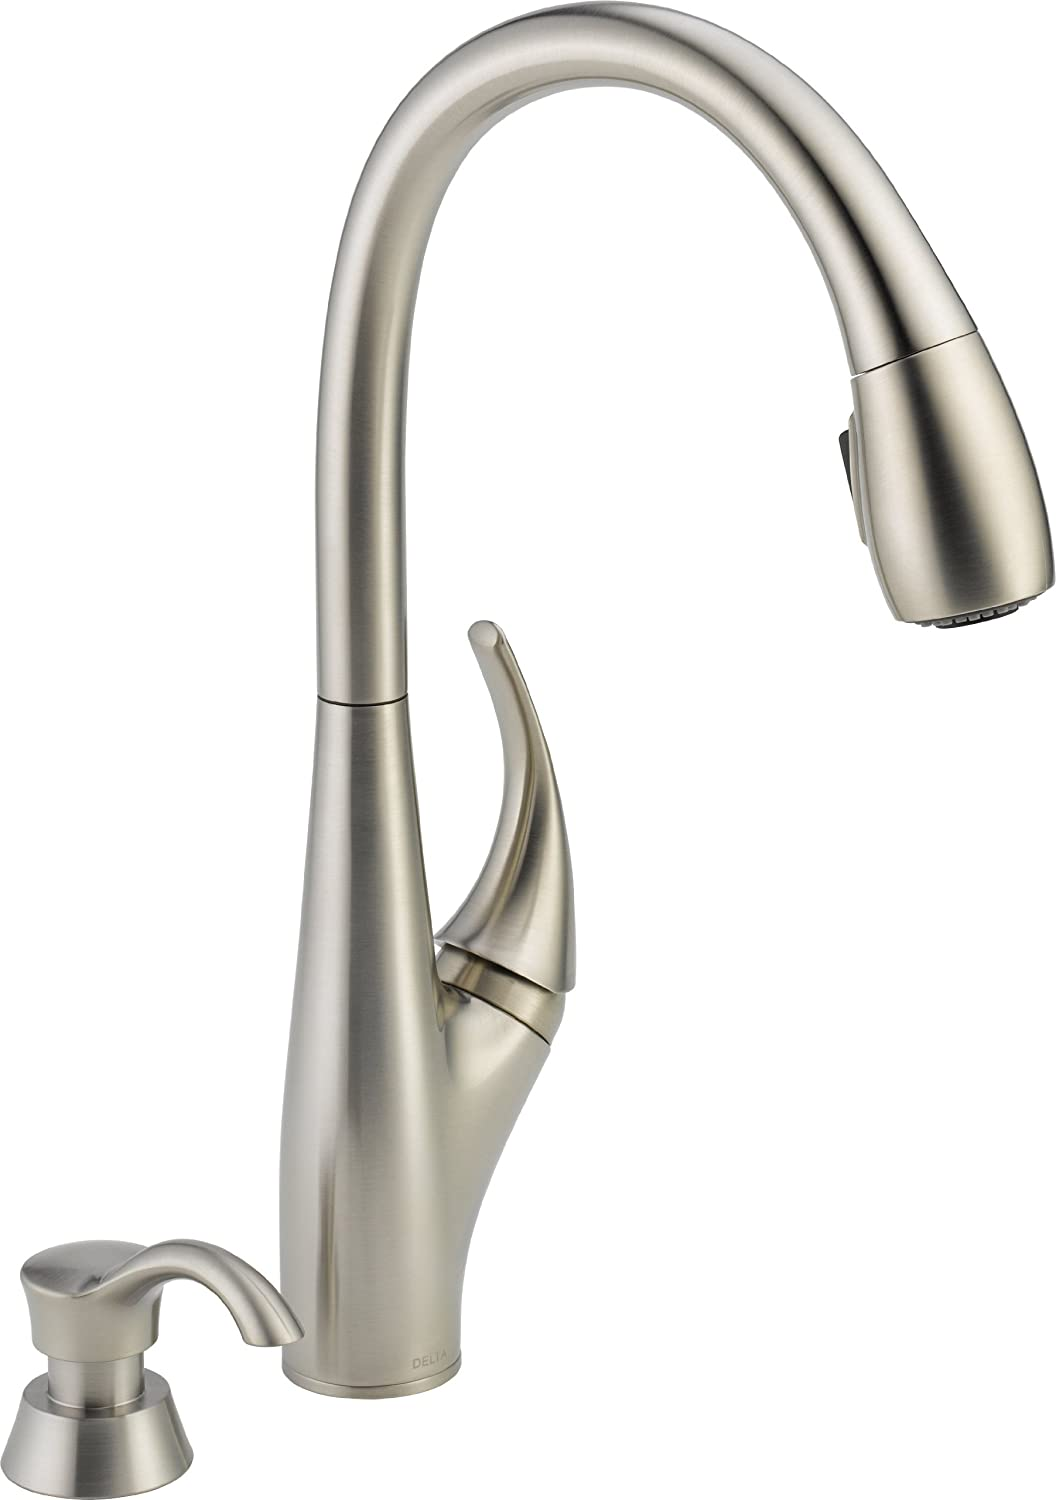 accessories to delta elegant repair faucet handle leaky how bathroom dripping plus fix kitchen single